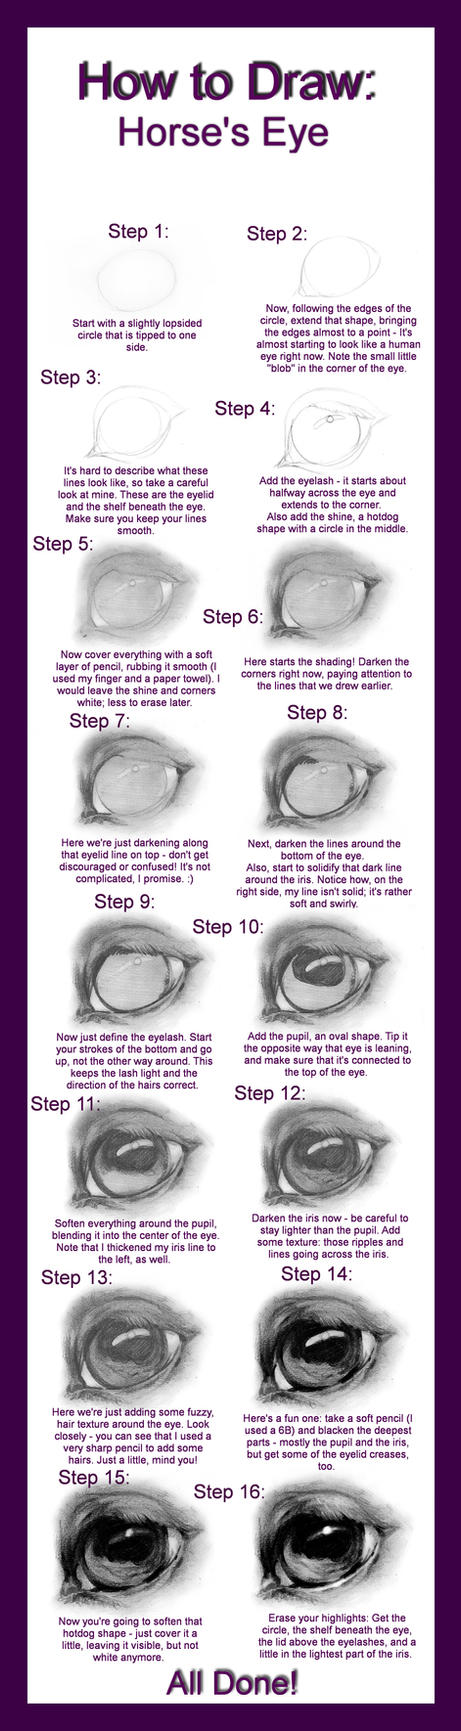 How To Draw: Horse's Eye By